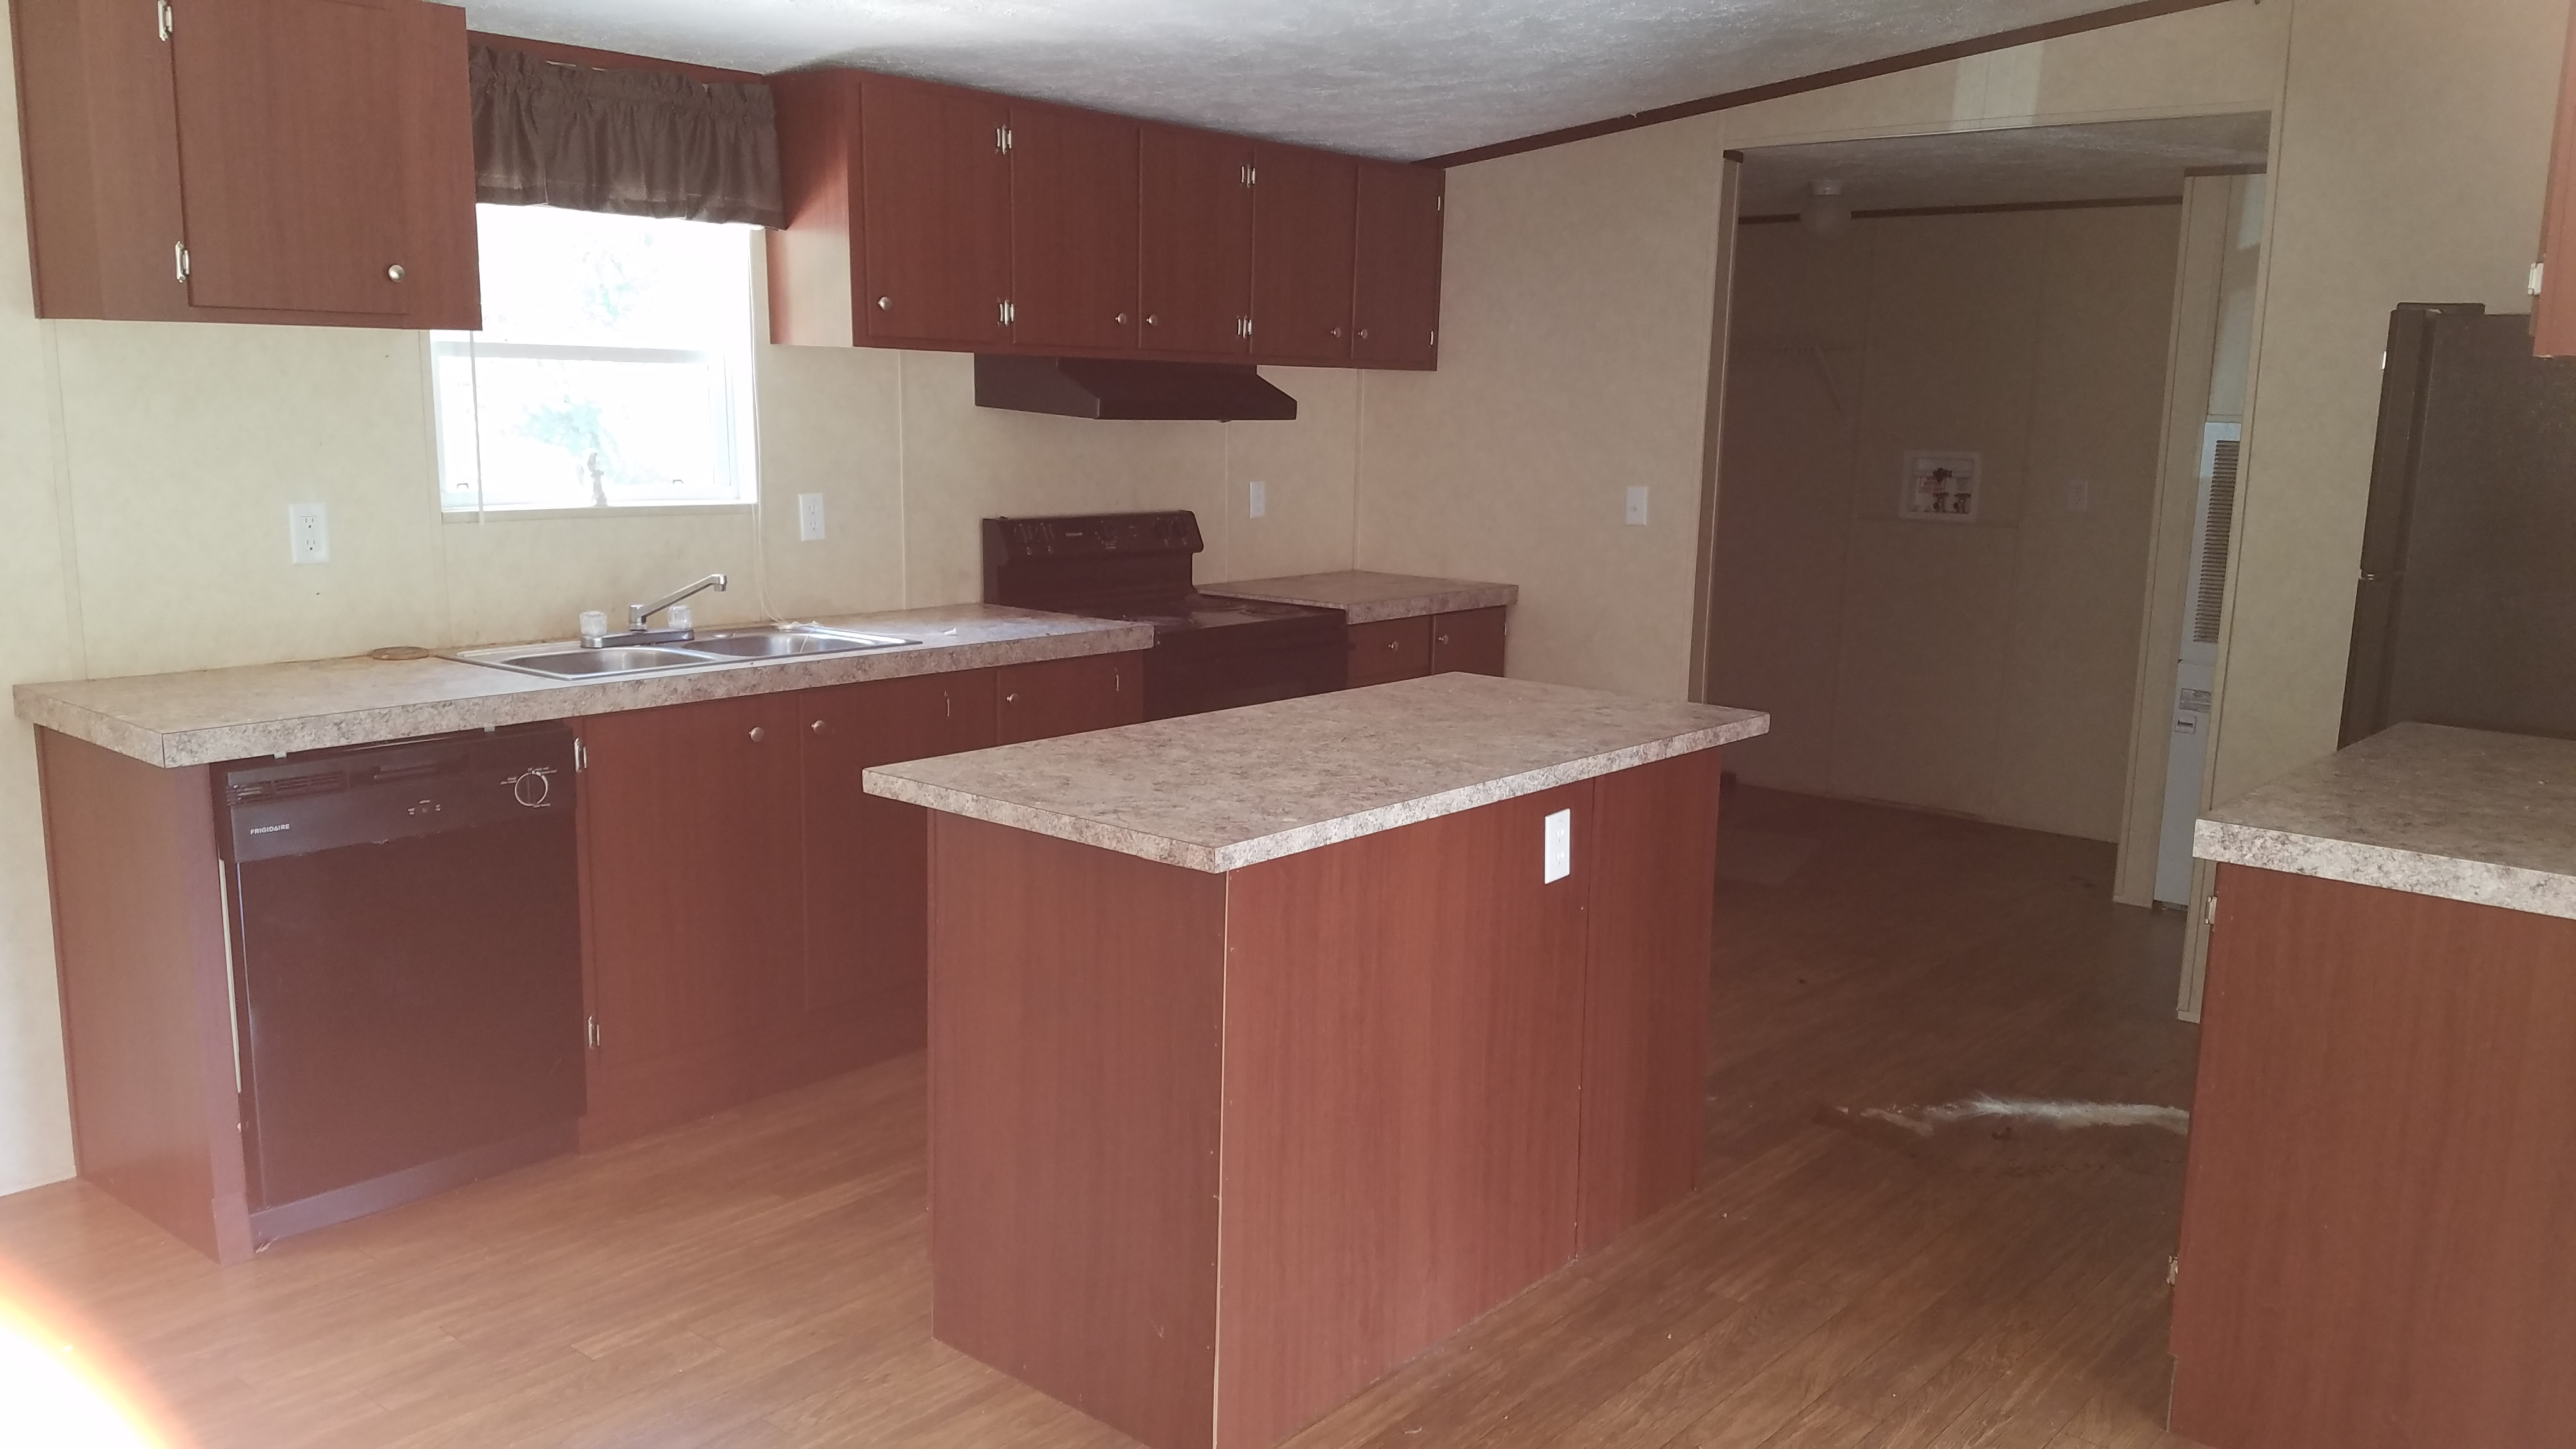 Greentree financial repossessed mobile homes - New